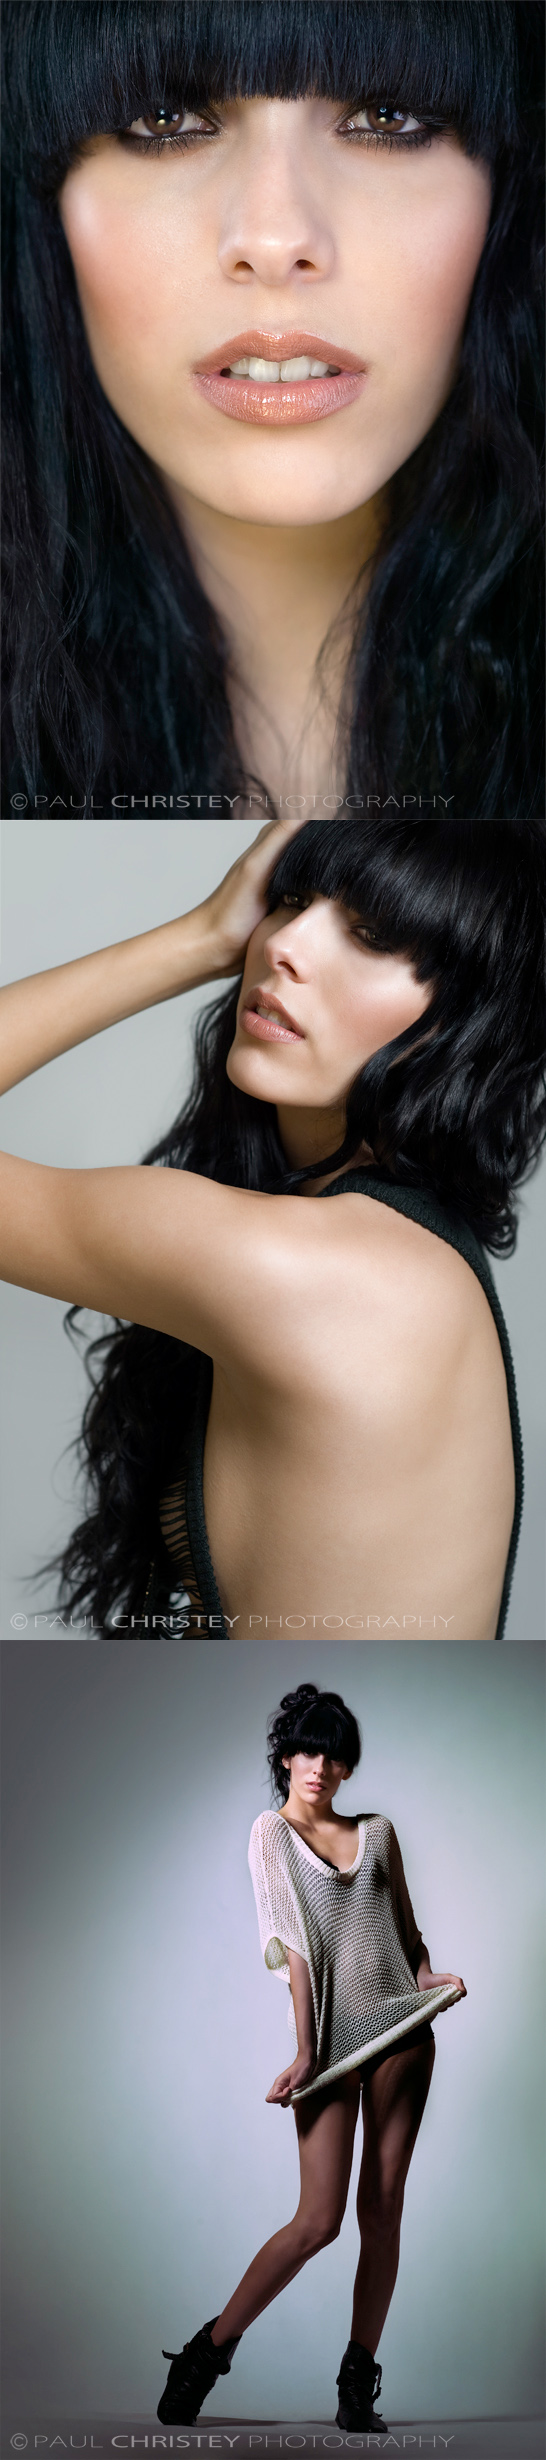 Female model photo shoot of ChelseaRose by Paul Christey, hair styled by Nadine Johns, makeup by June Escobar